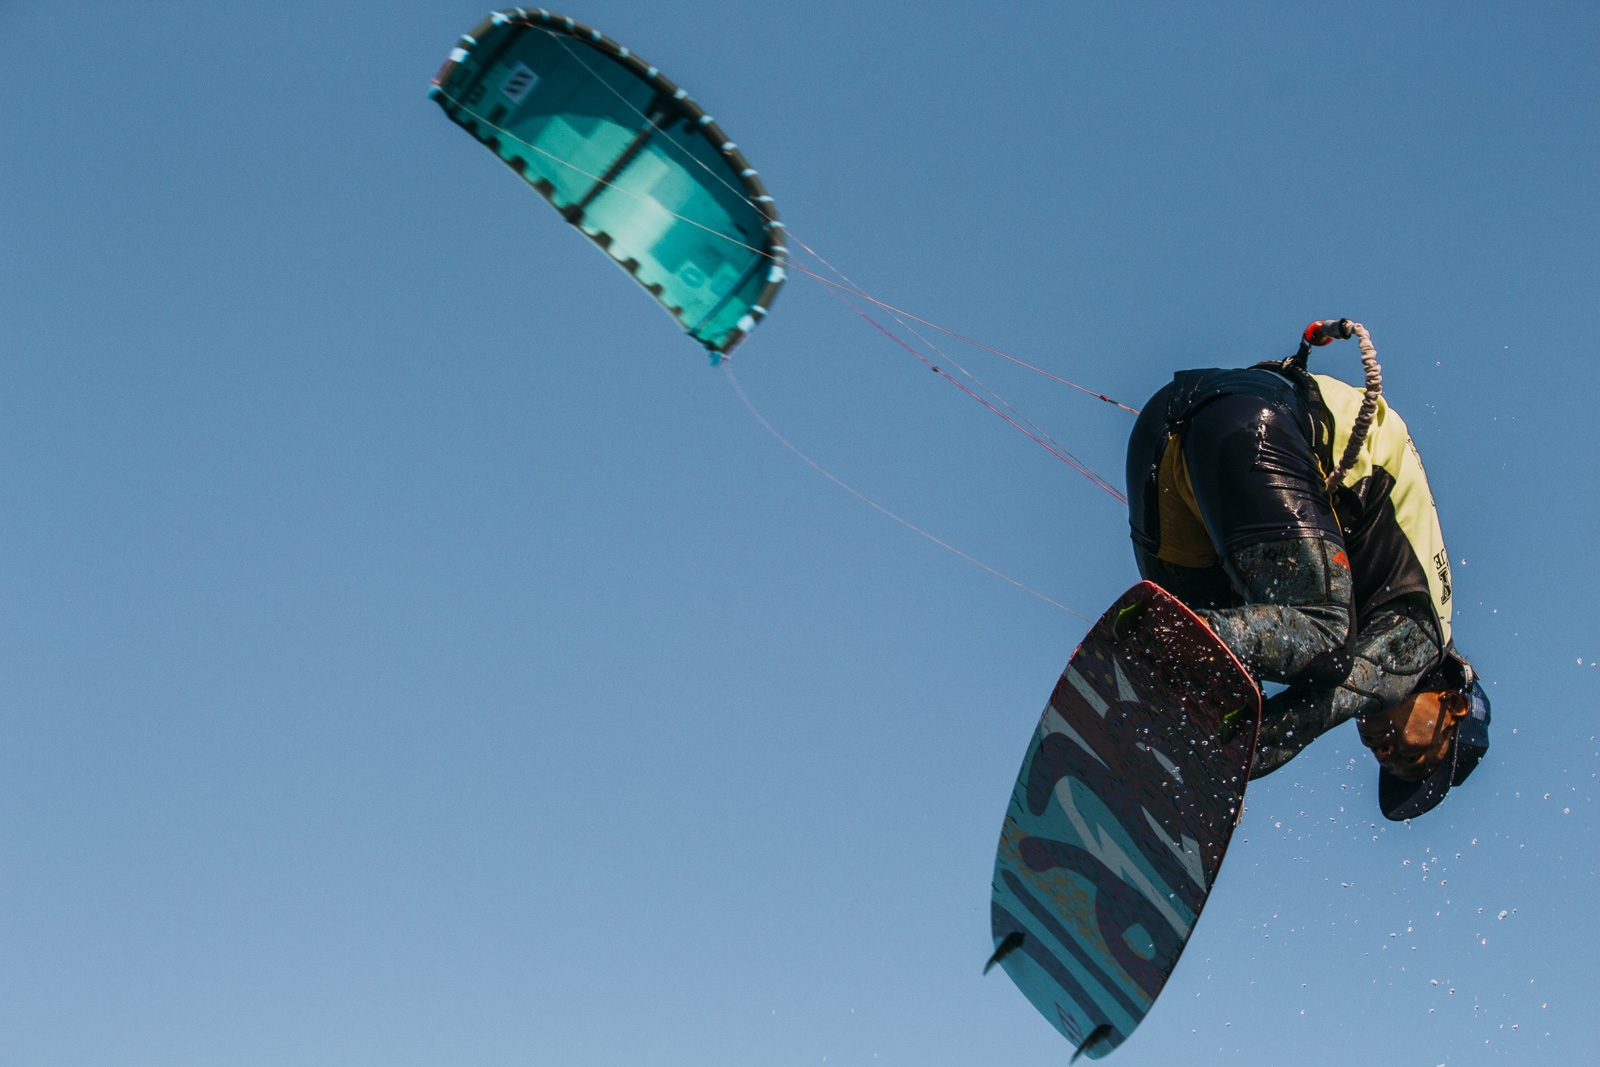 Kite Surfer trick